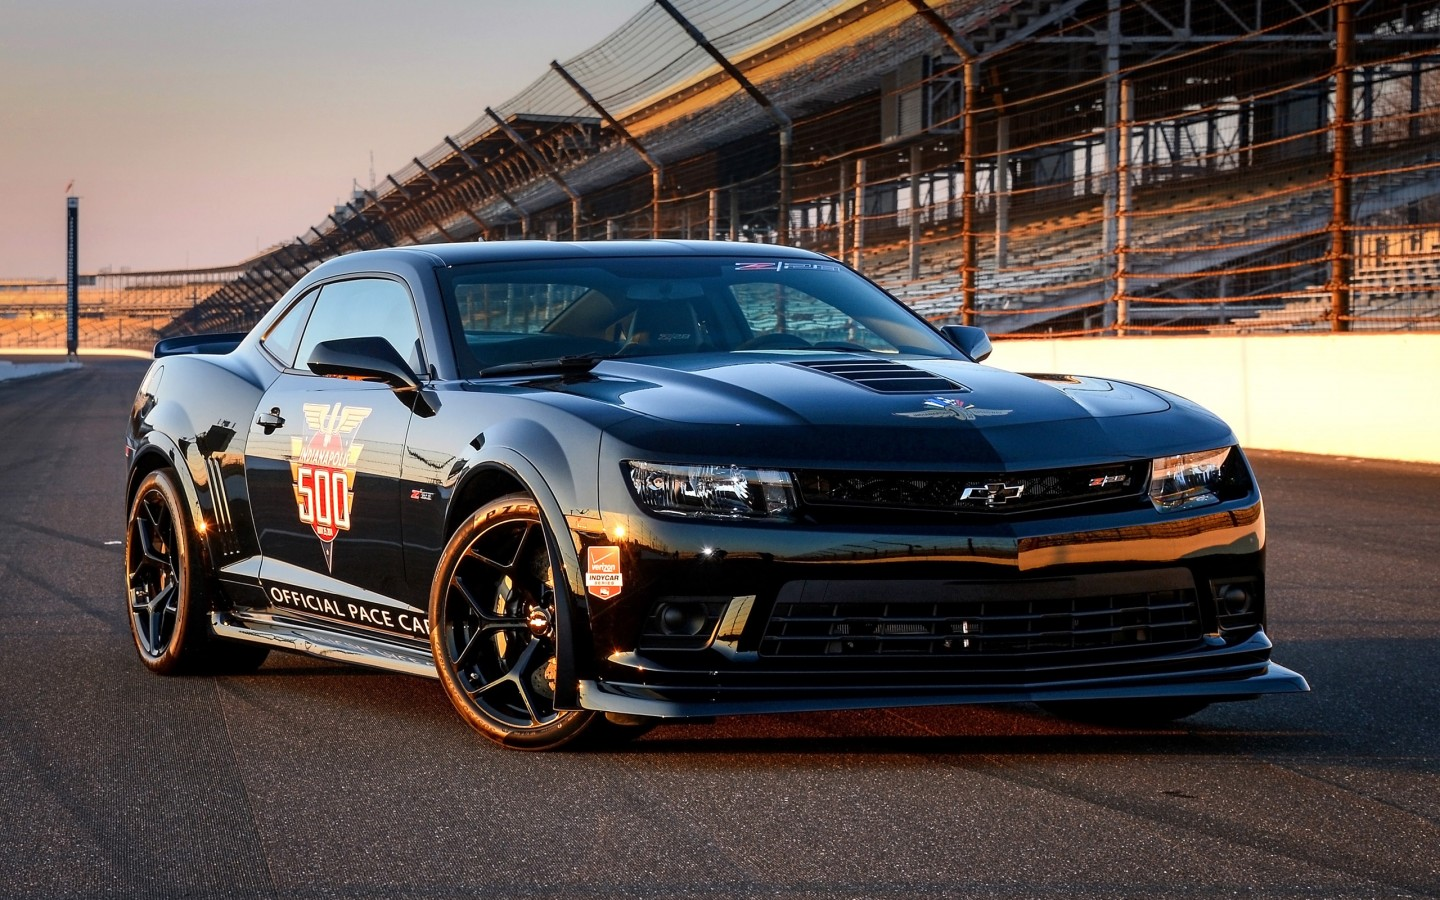 2014 Chevrolet Camaro Z28 Indy 500 Pace Car Wallpaper | HD ...